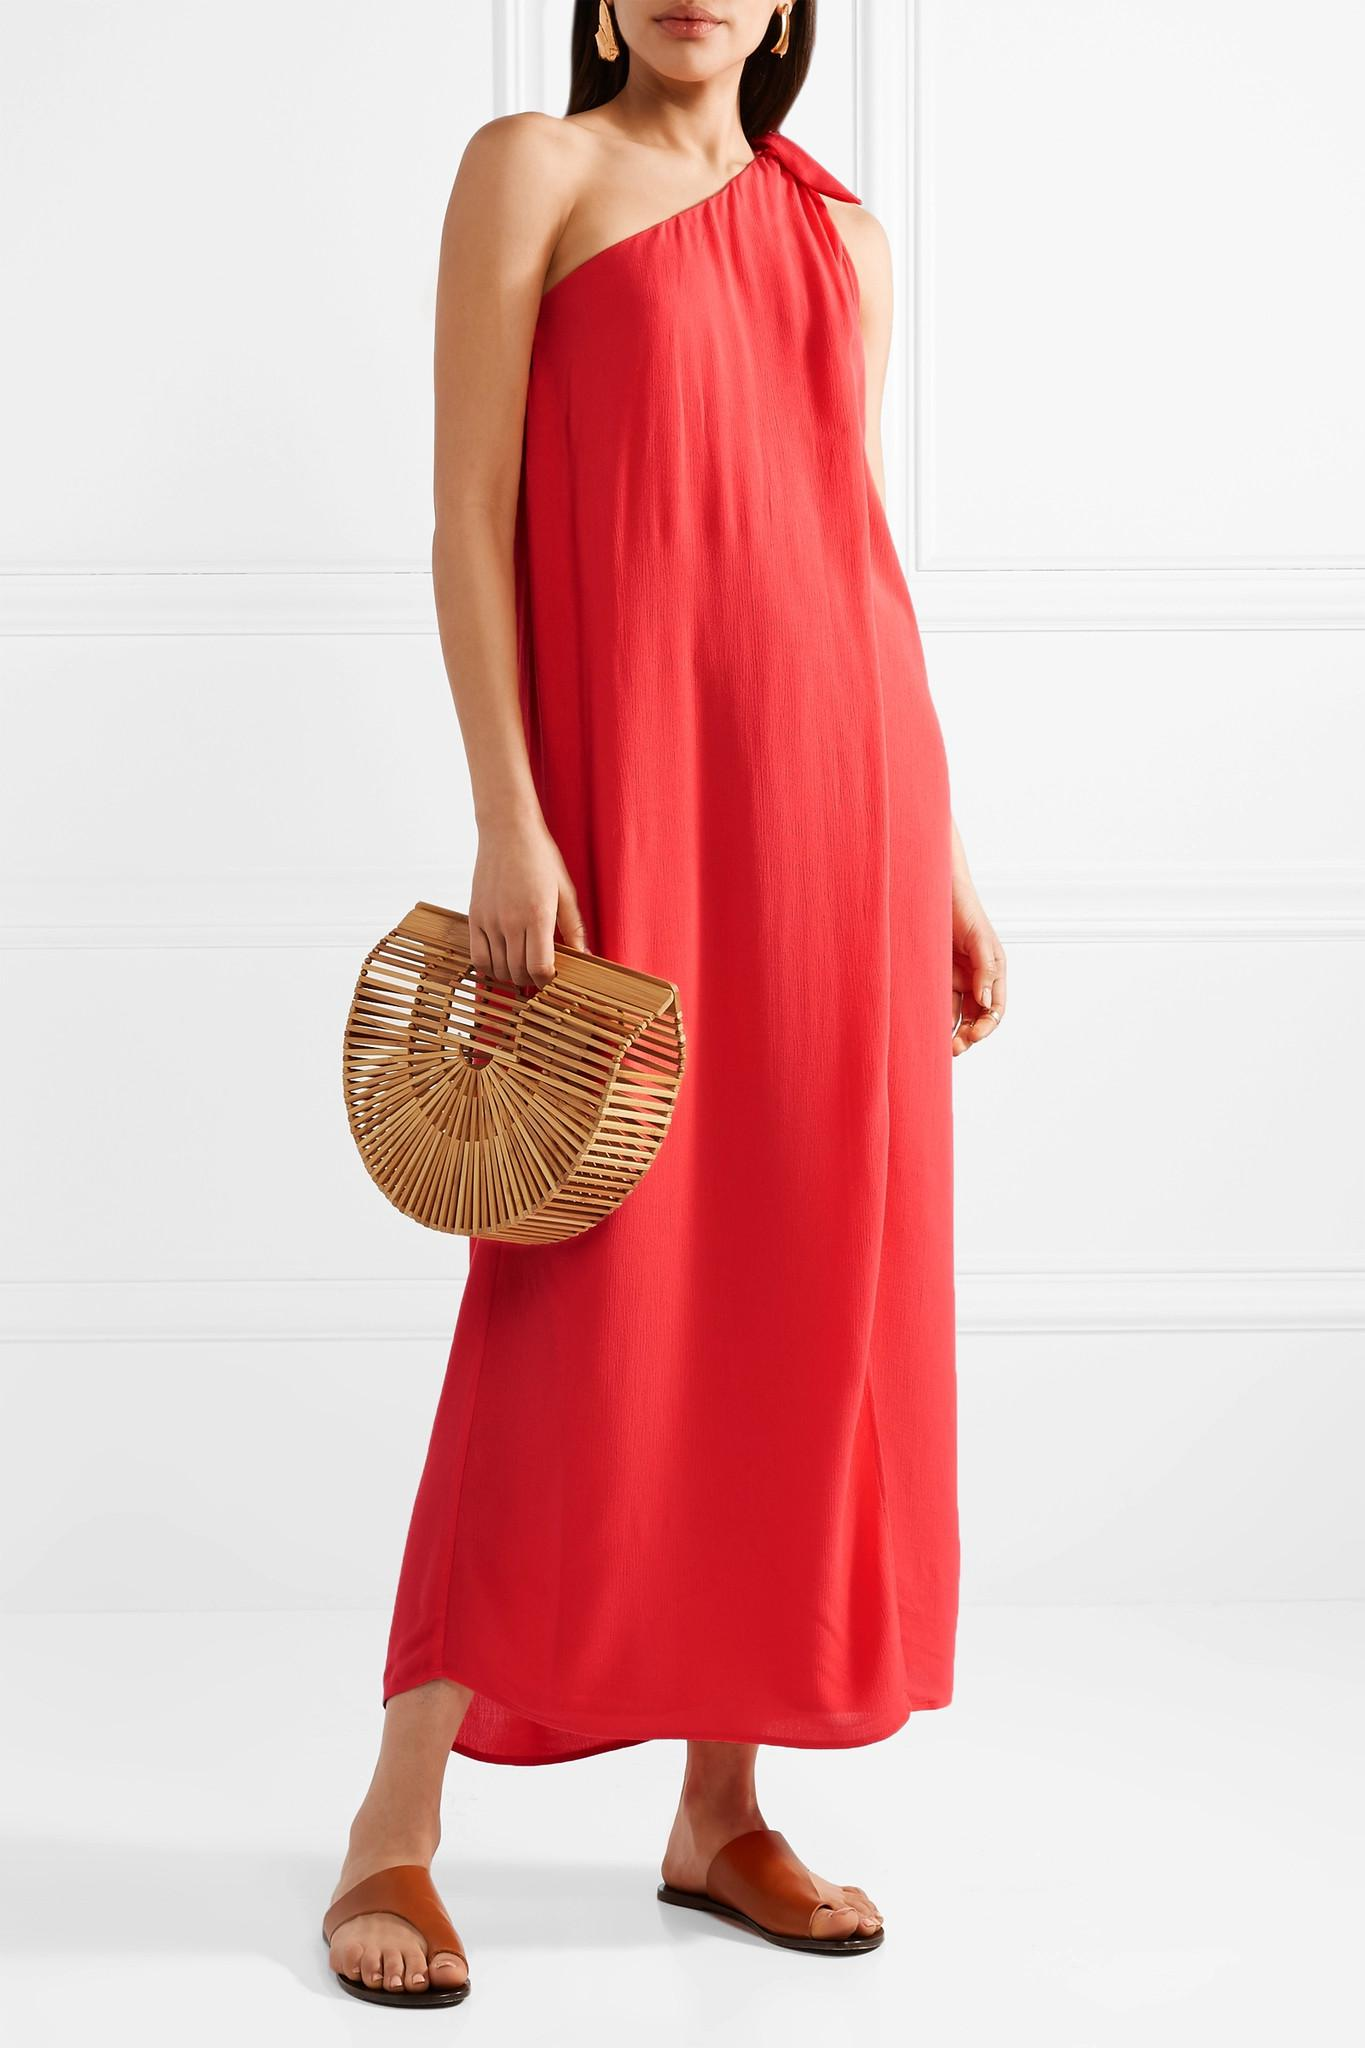 Camilla one-shoulder dress Mara Hoffman Outlet Amazing Price Lowest Price Cheap Online X8ASBpb